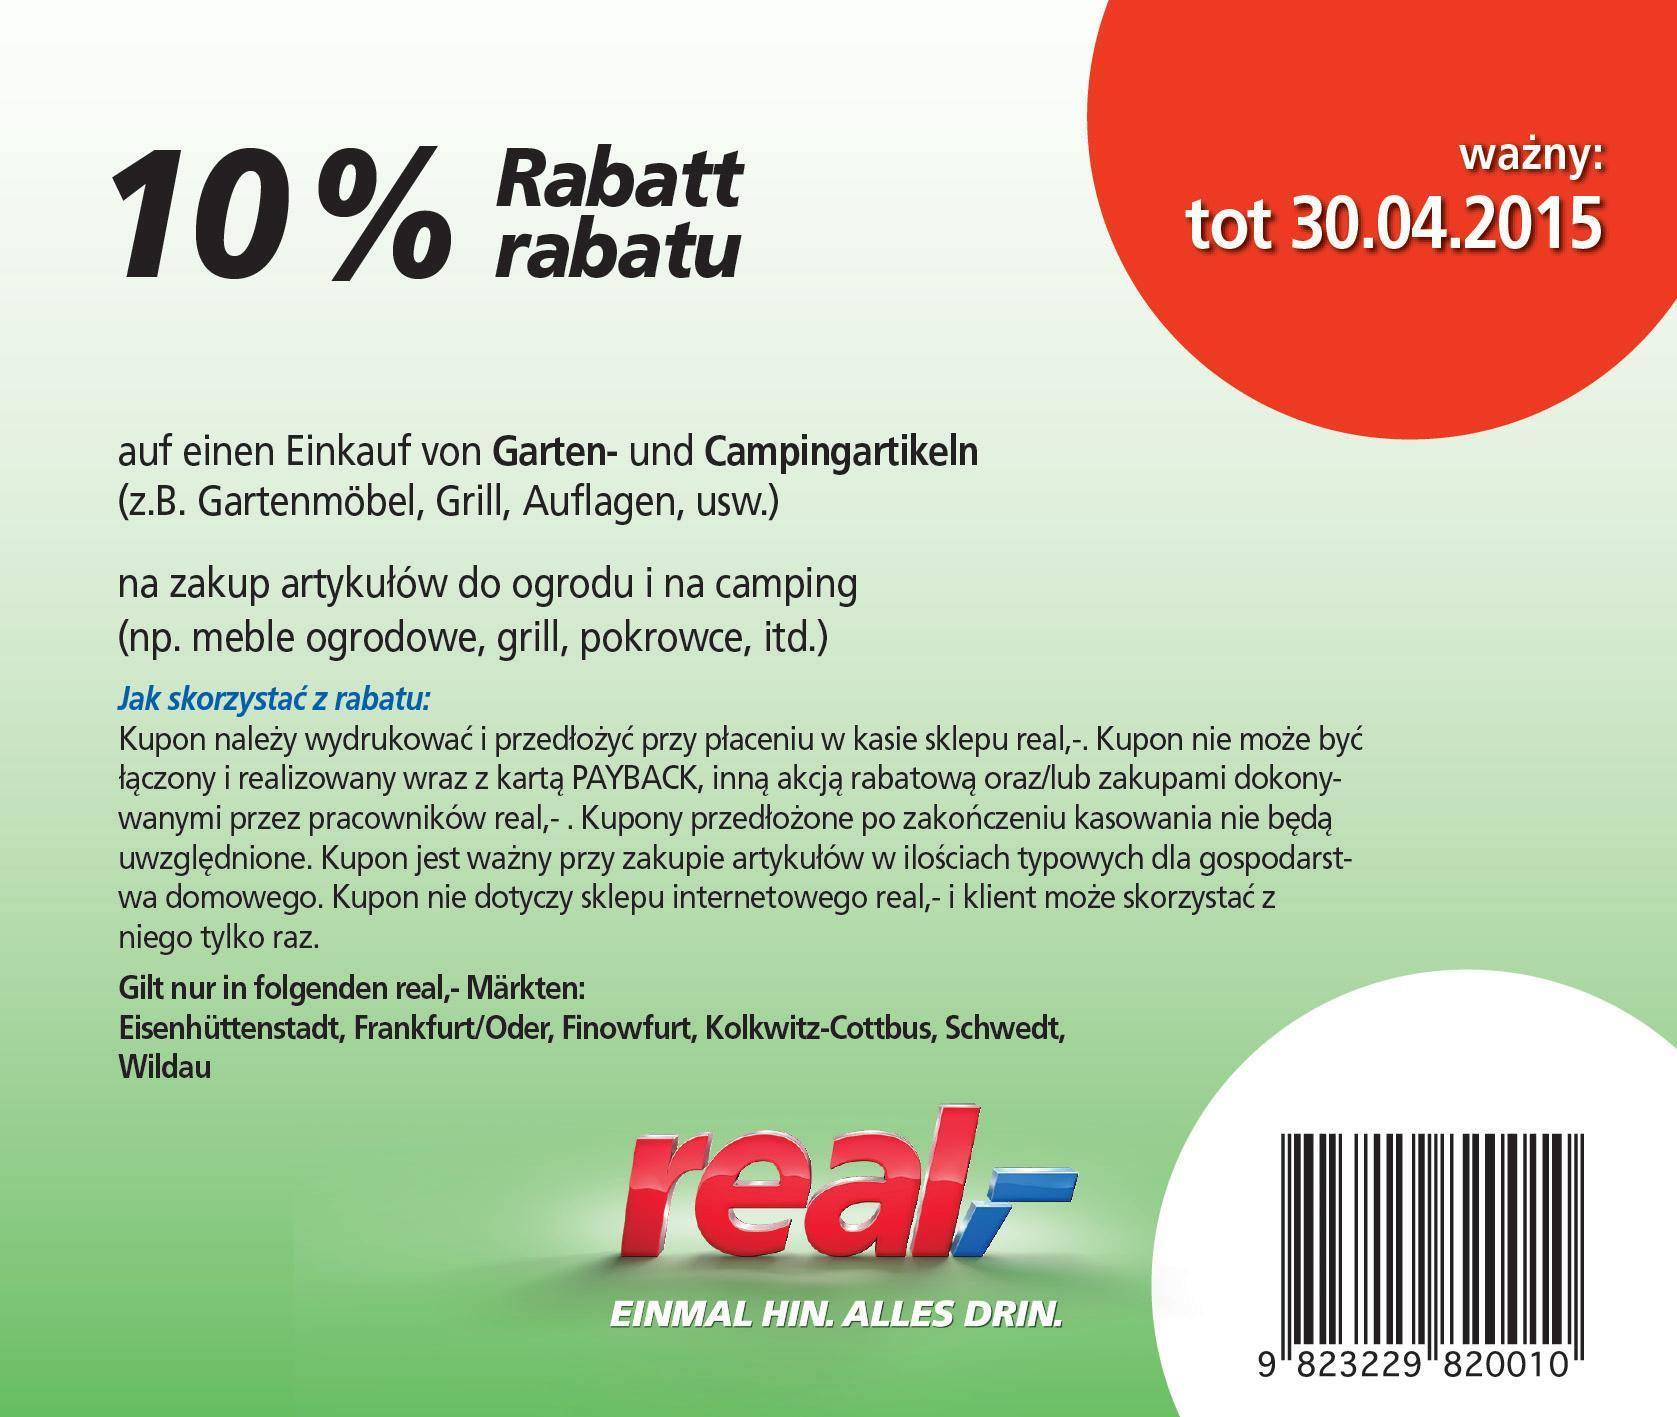 coupons_apr_2015_pl-pn2xqx.jpg